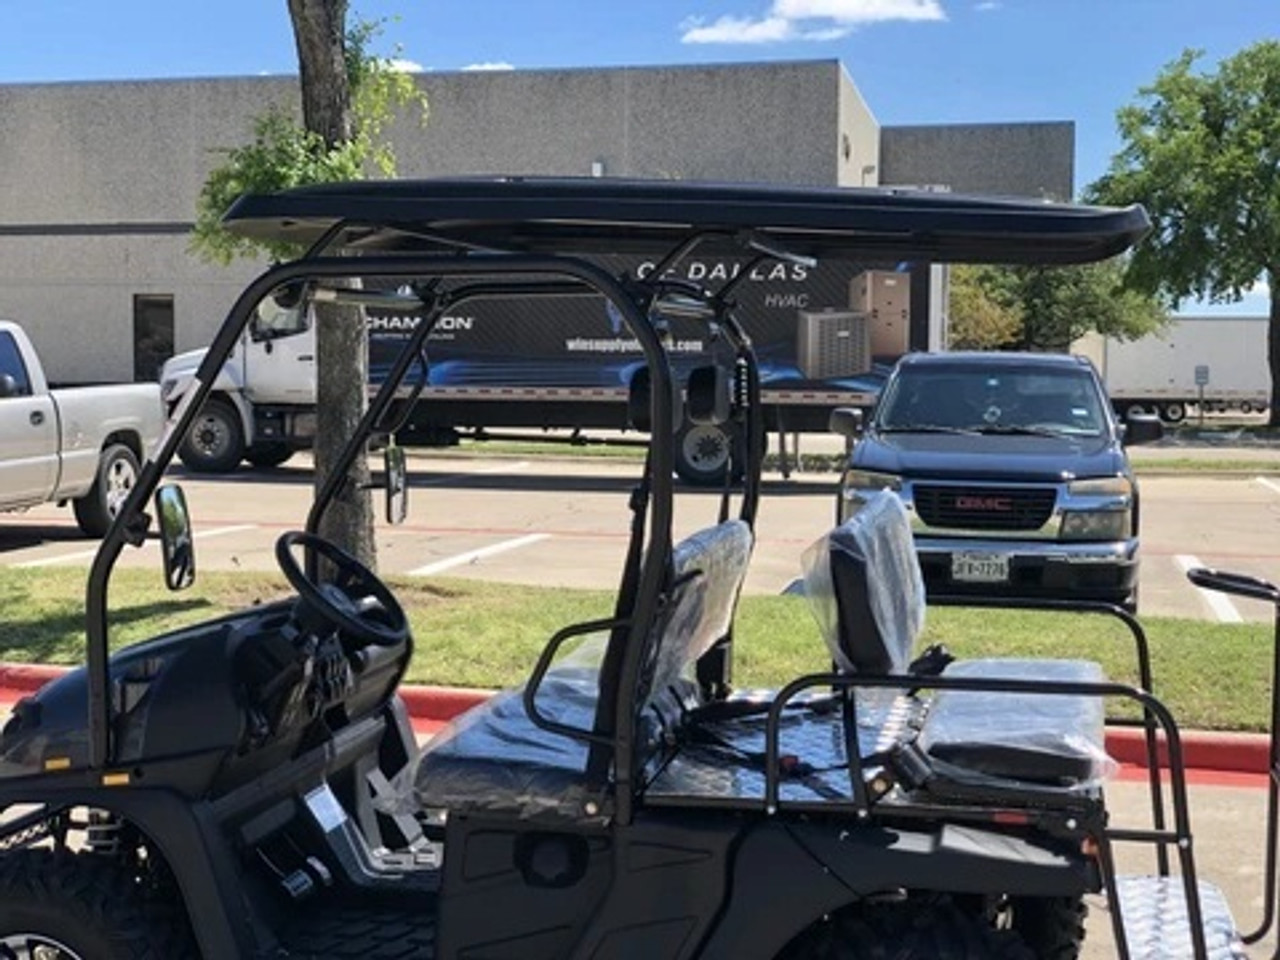 BLACK - Cazador Outfitter 200x Fully Loaded Golf Cart 4 seater